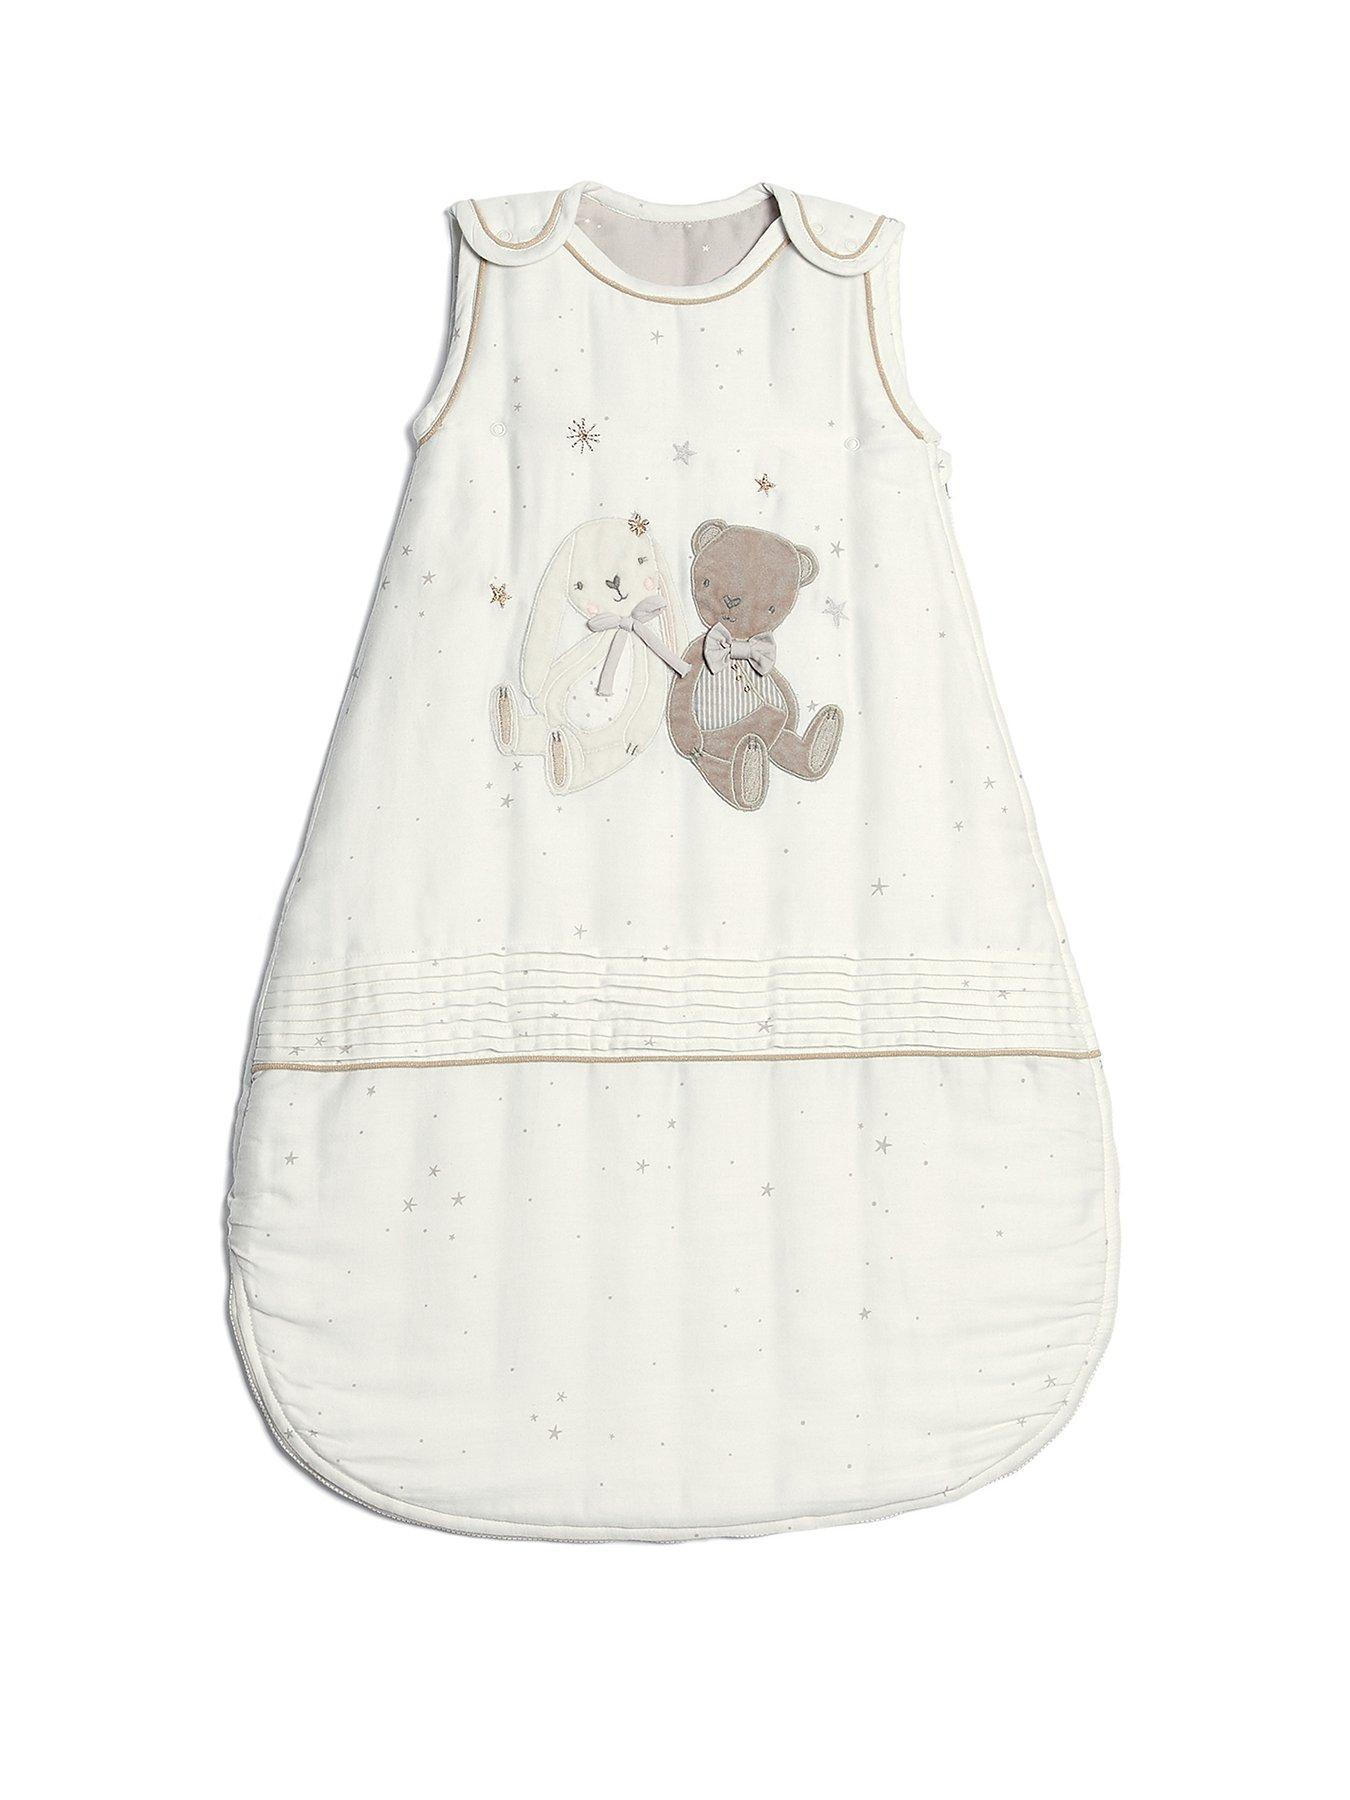 Baby Sleeping Bag with Zip Fastening 0-6 Months Moon Embroidery White 2.5 Tog Wrap Bag